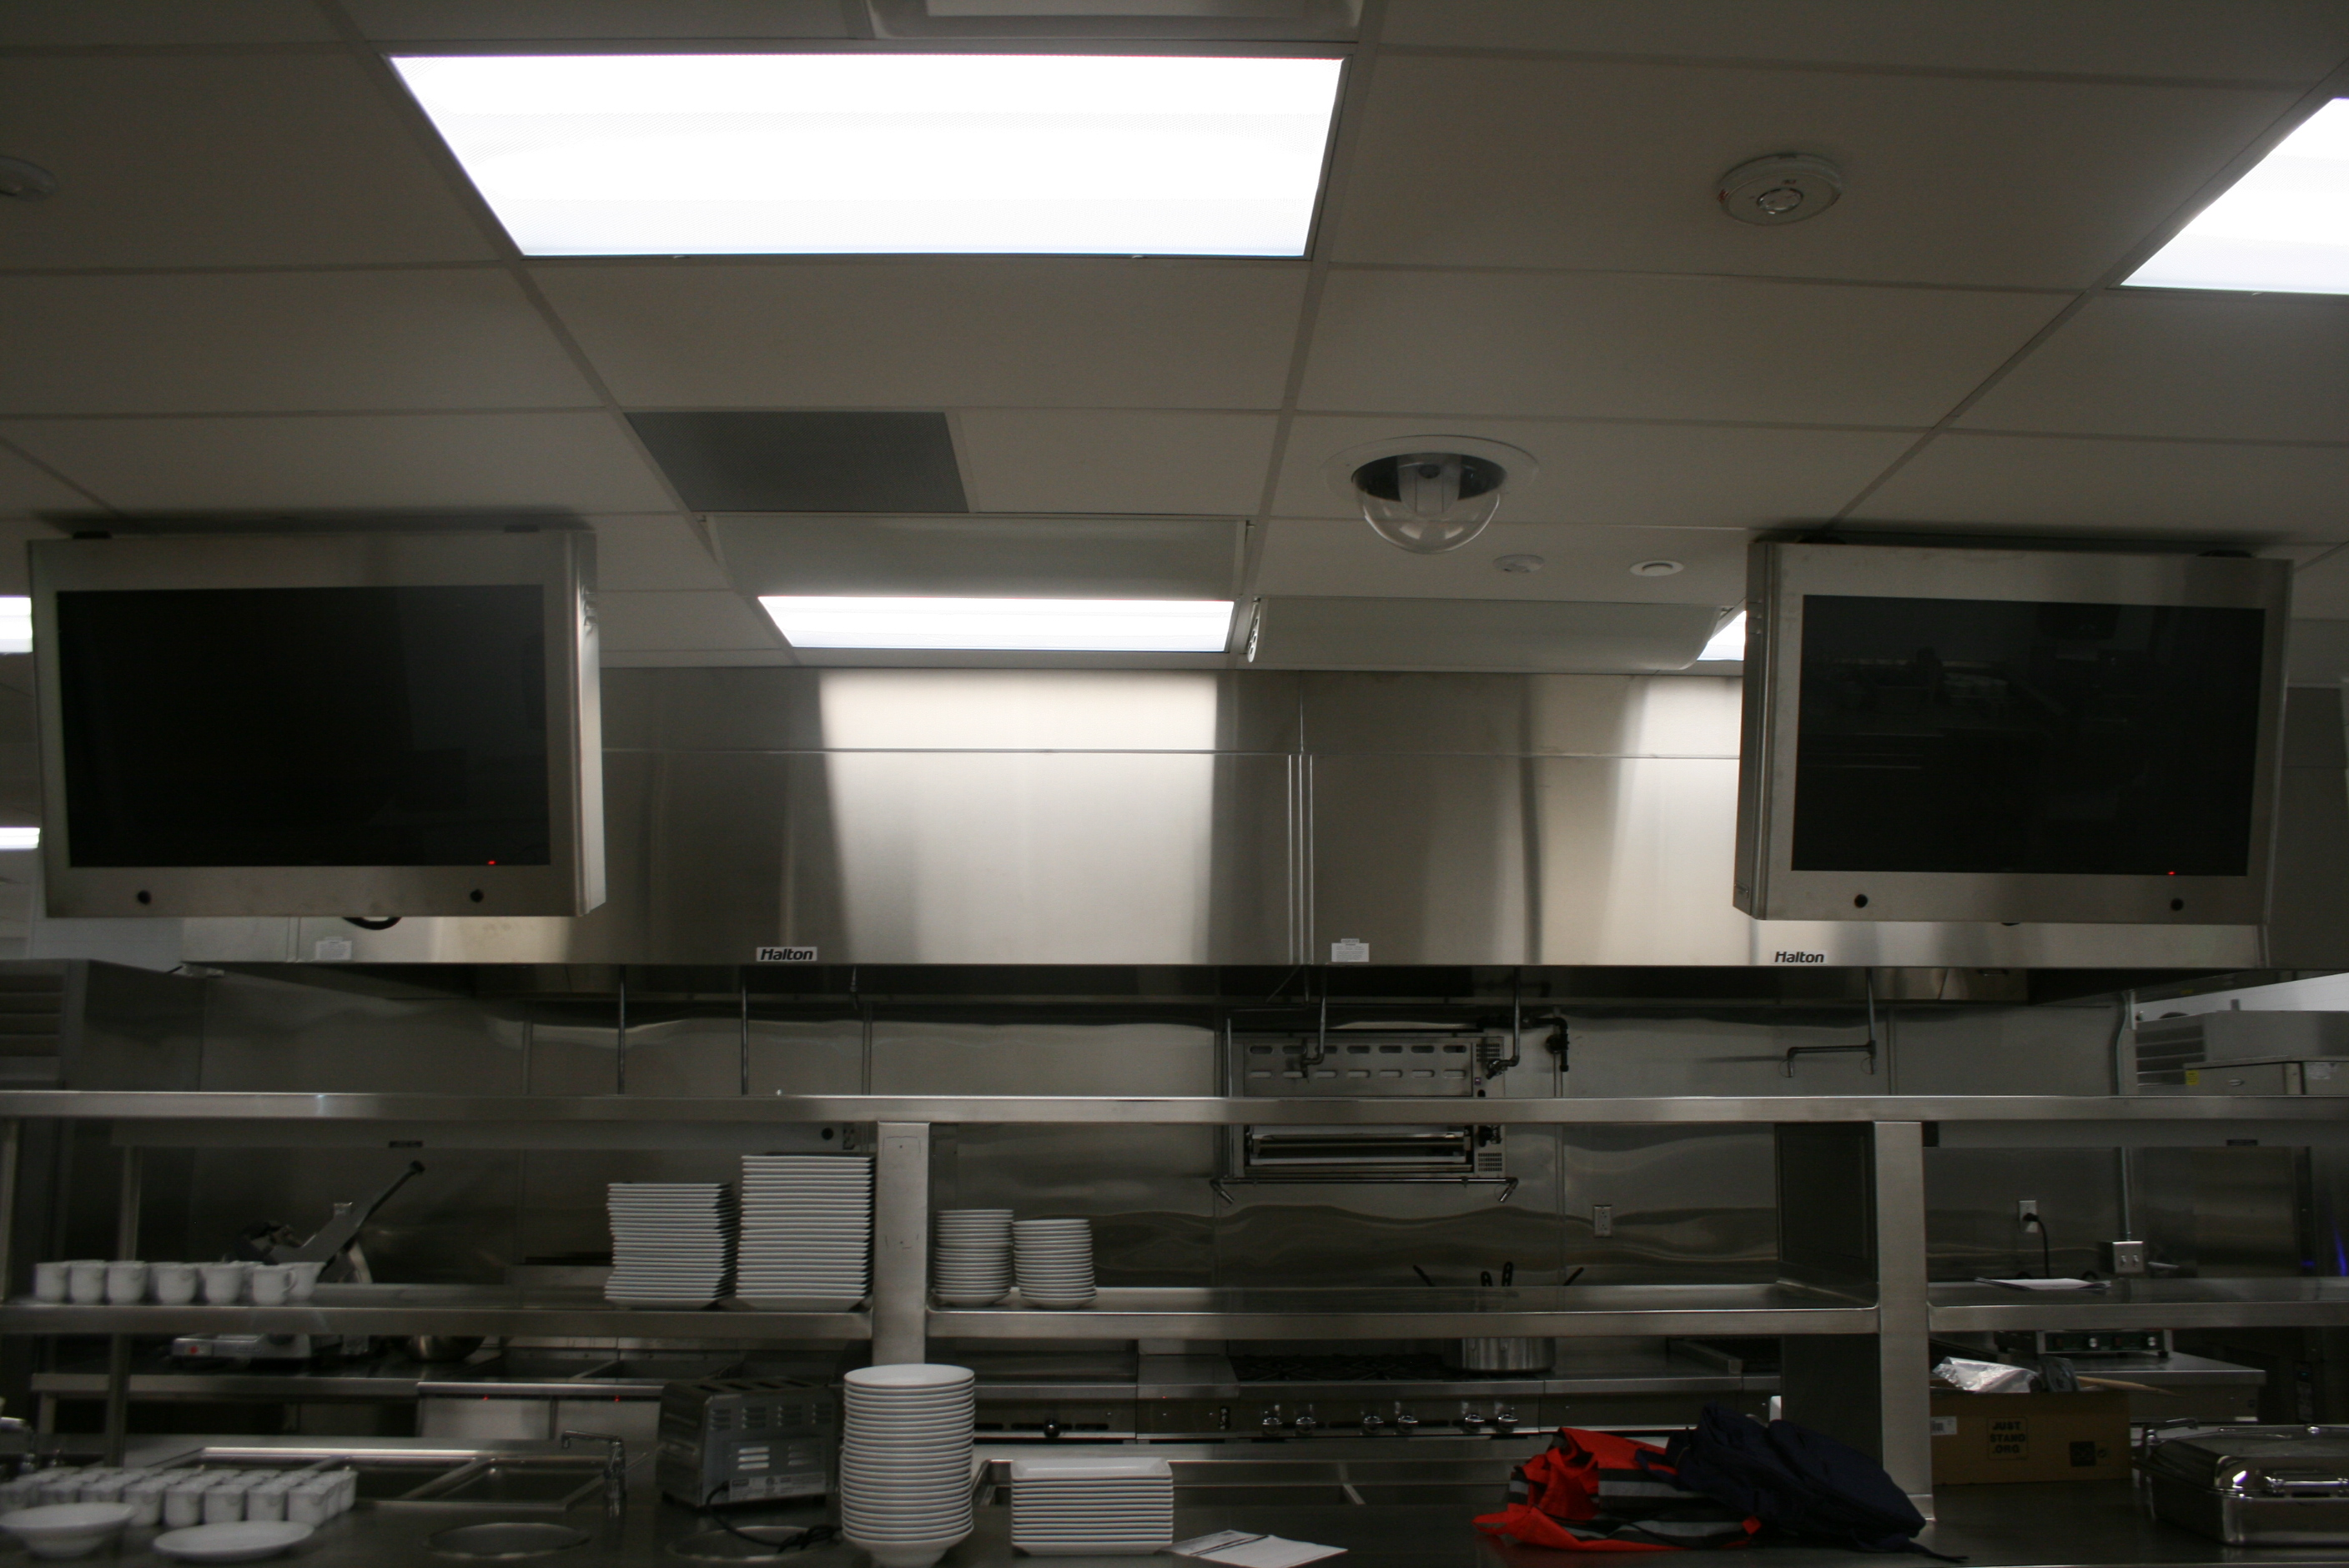 Students are able to quickly reference instructions and lesson materials displayed above each serving station.